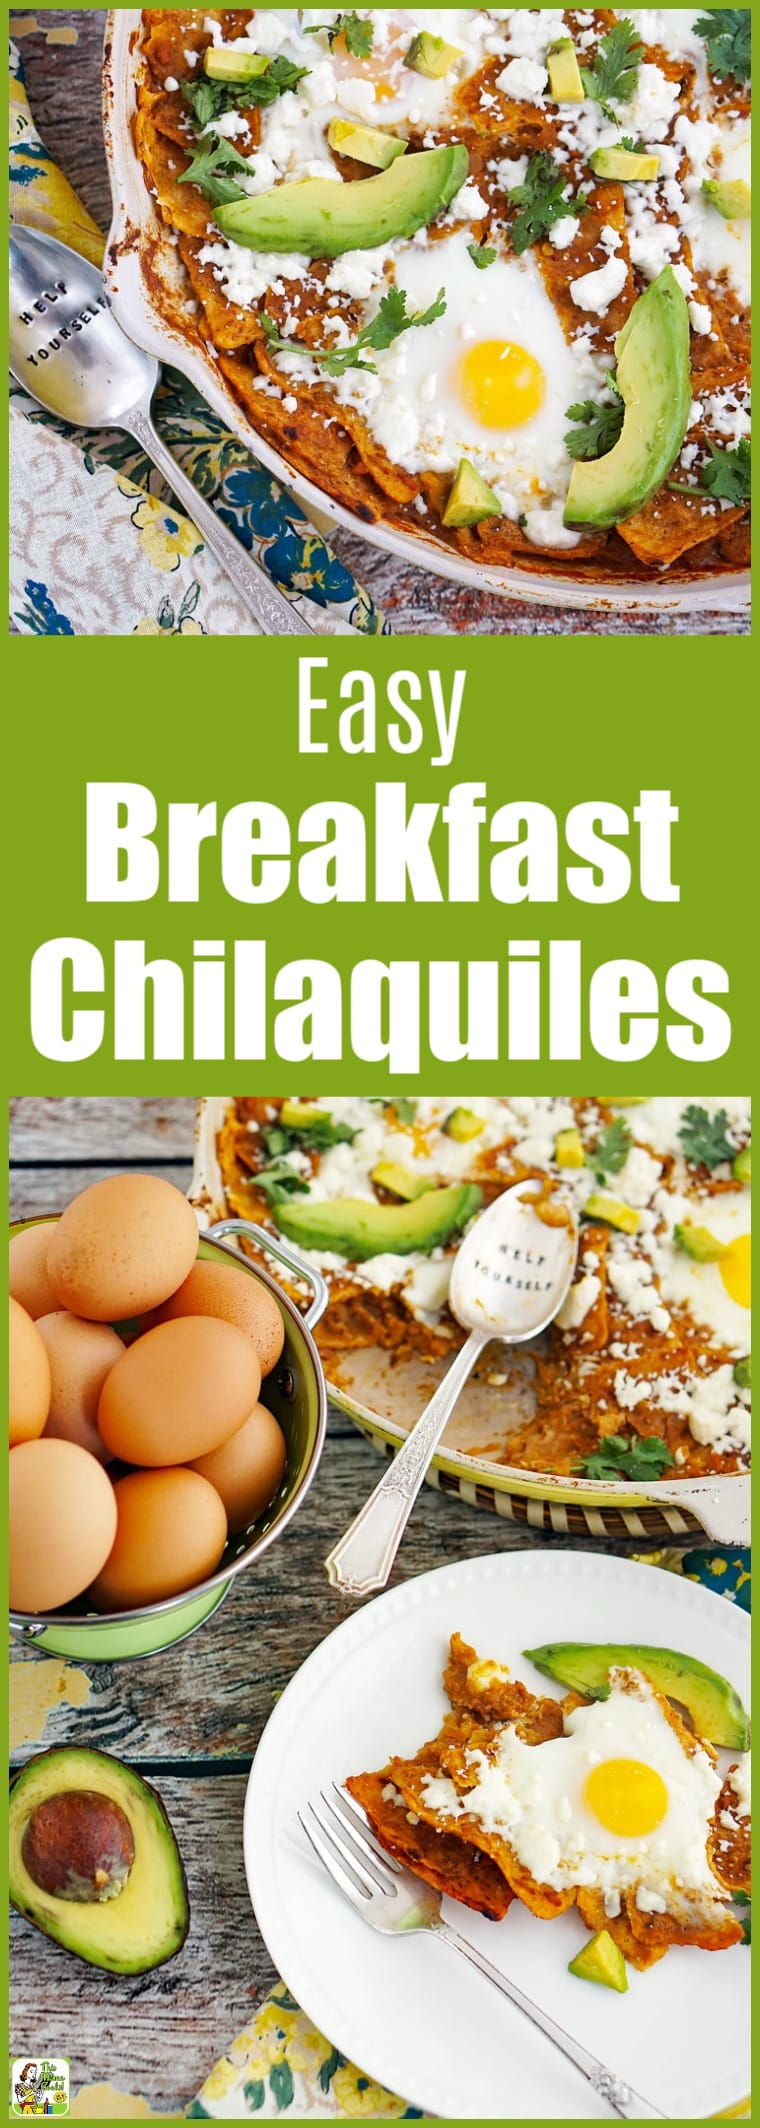 Easy Breakfast Chilaquiles Recipe